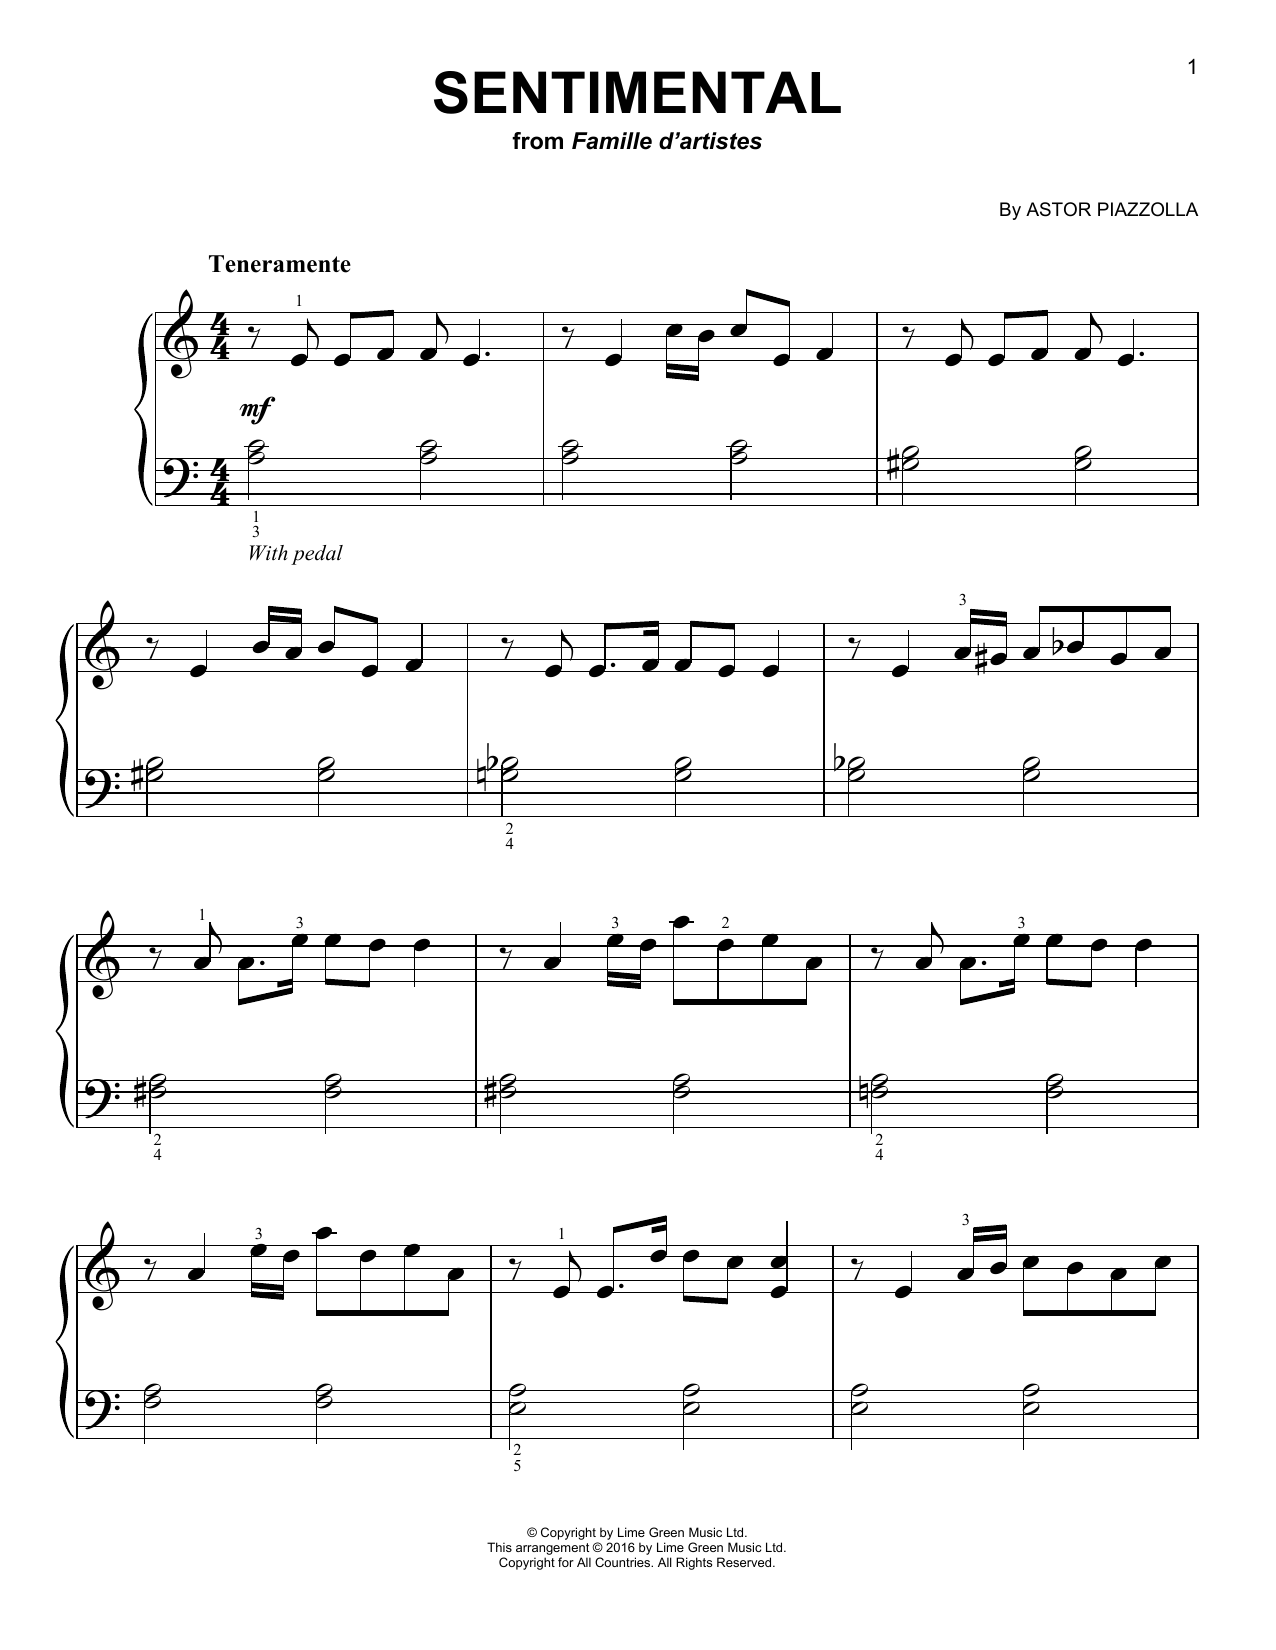 Astor Piazzolla Sentimental sheet music notes and chords. Download Printable PDF.